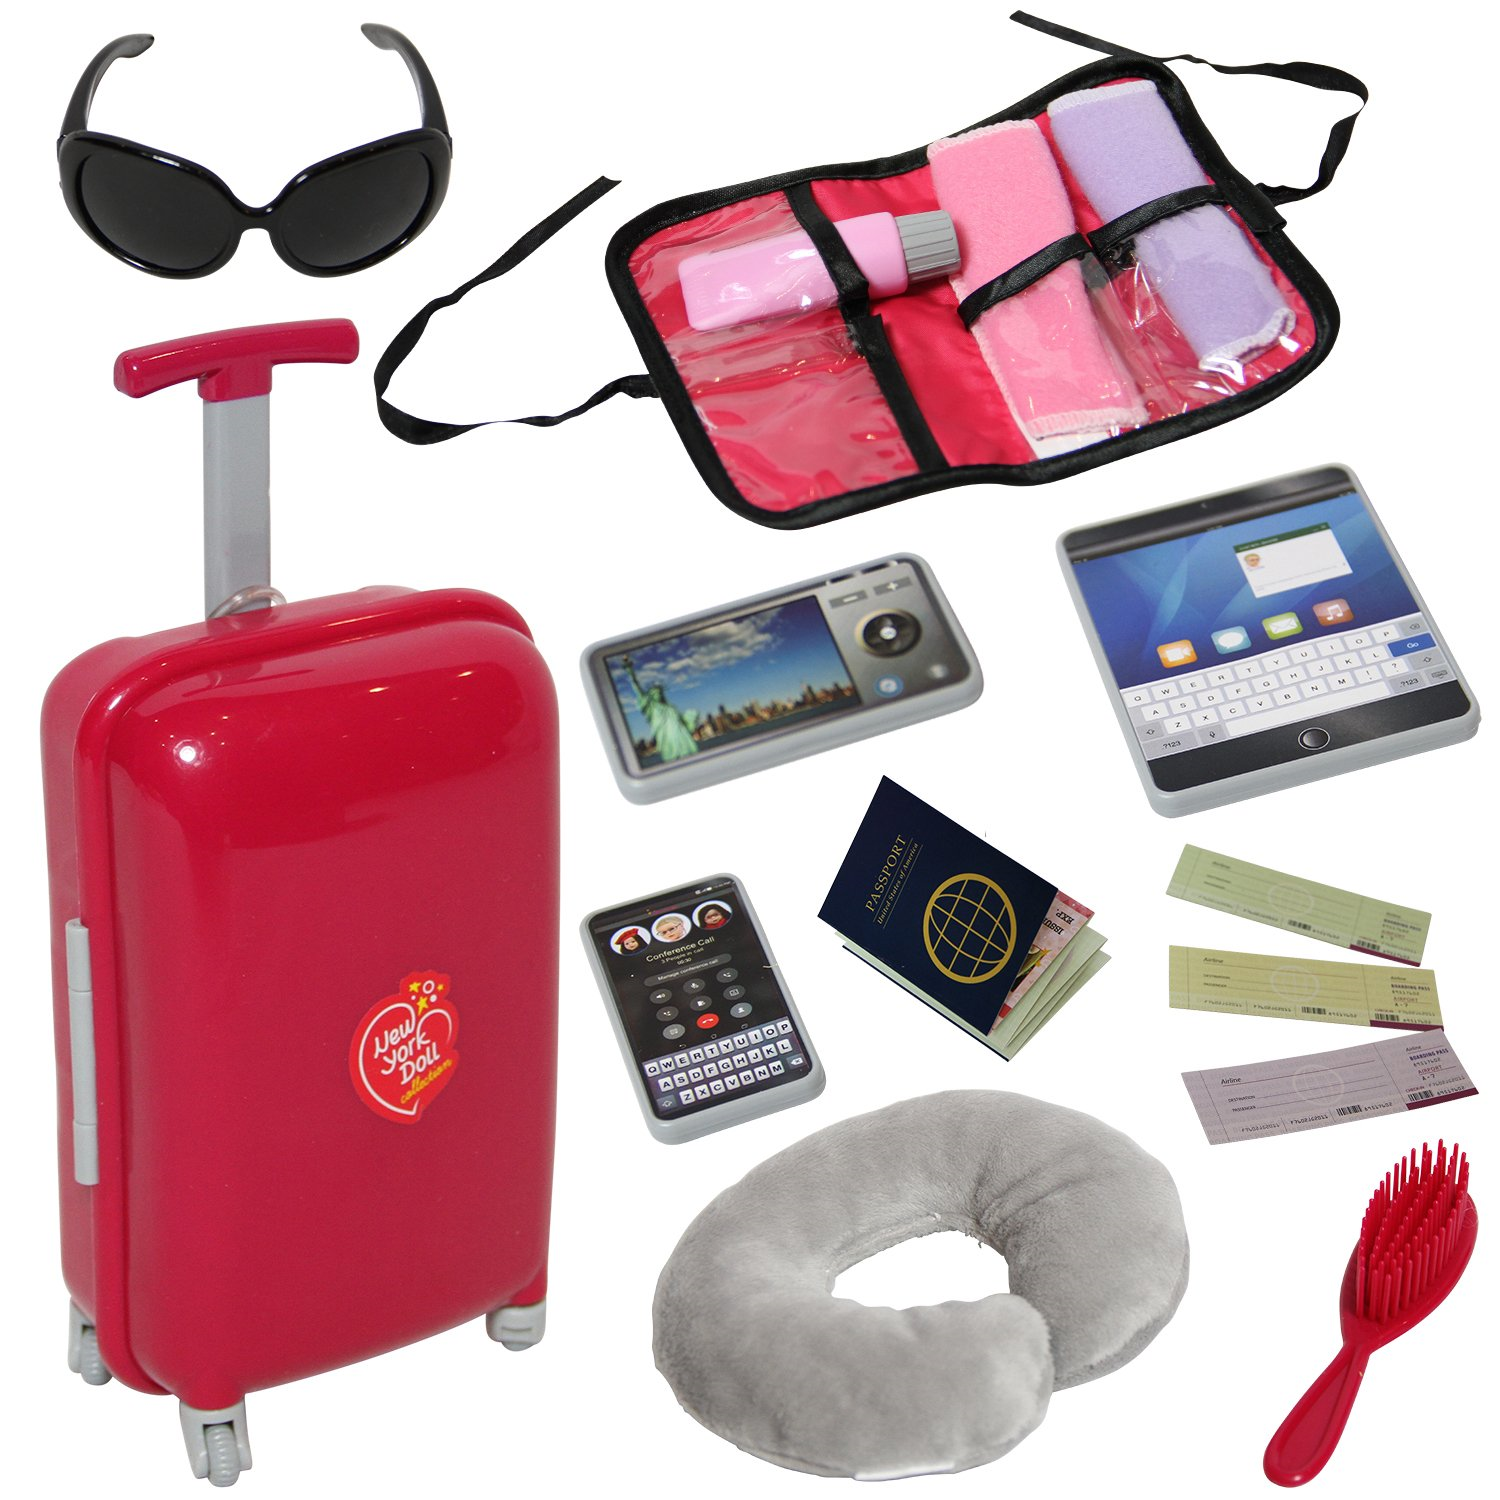 Including Luggage Pillow Blindfold Sunglasses Camera Computer Phone Ipad Umbrella Clothes/&Shoes Braicipt Doll Travel Suitcase Play Set for American 18 Inch